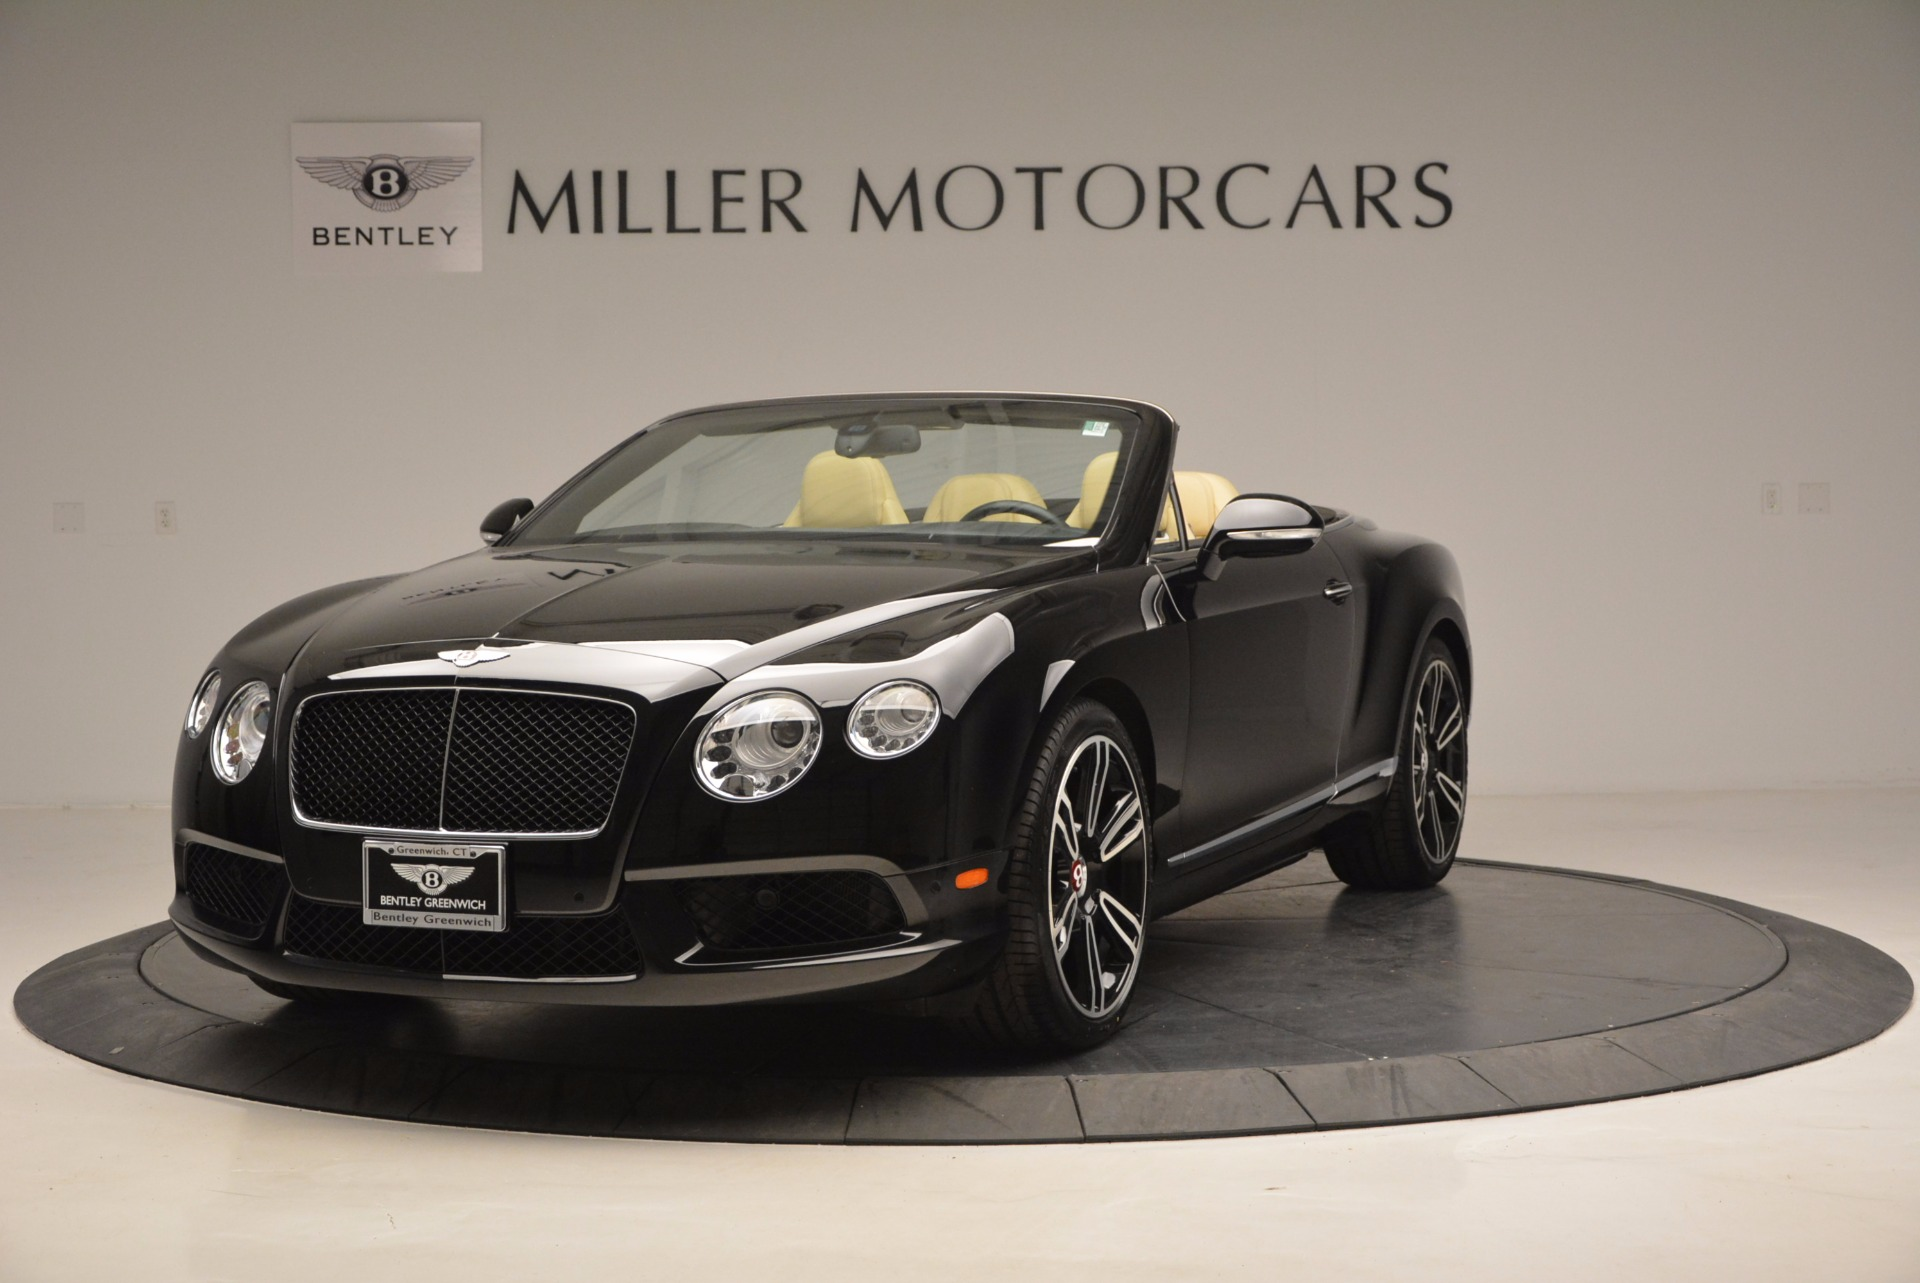 Used 2013 Bentley Continental GT V8 For Sale In Greenwich, CT. Alfa Romeo of Greenwich, 7144 945_main